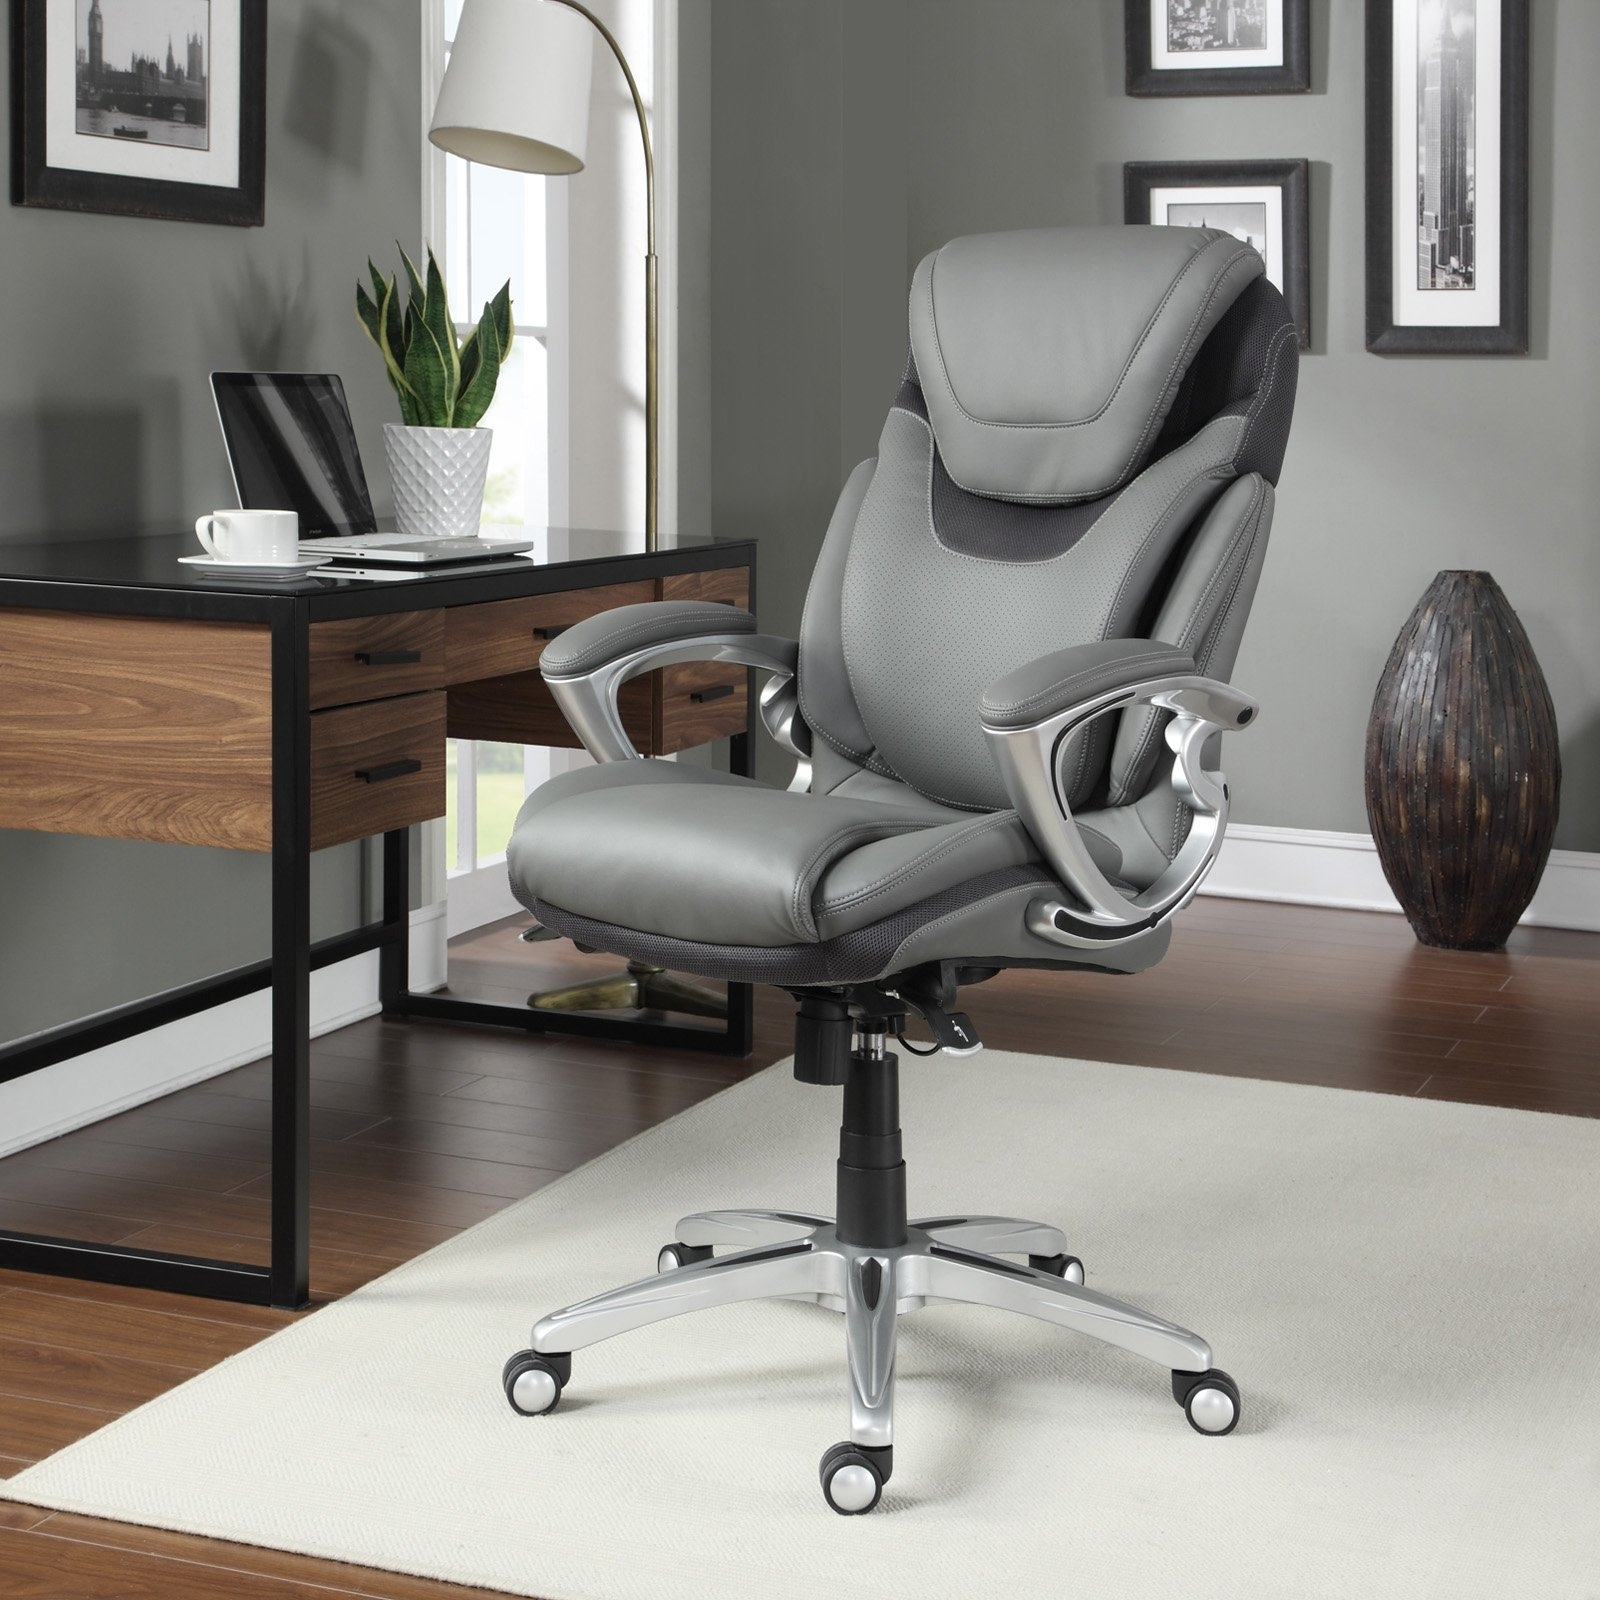 Well Liked Gray Leather Executive Office Chair • Office Chairs Regarding High End Executive Office Chairs (View 10 of 20)